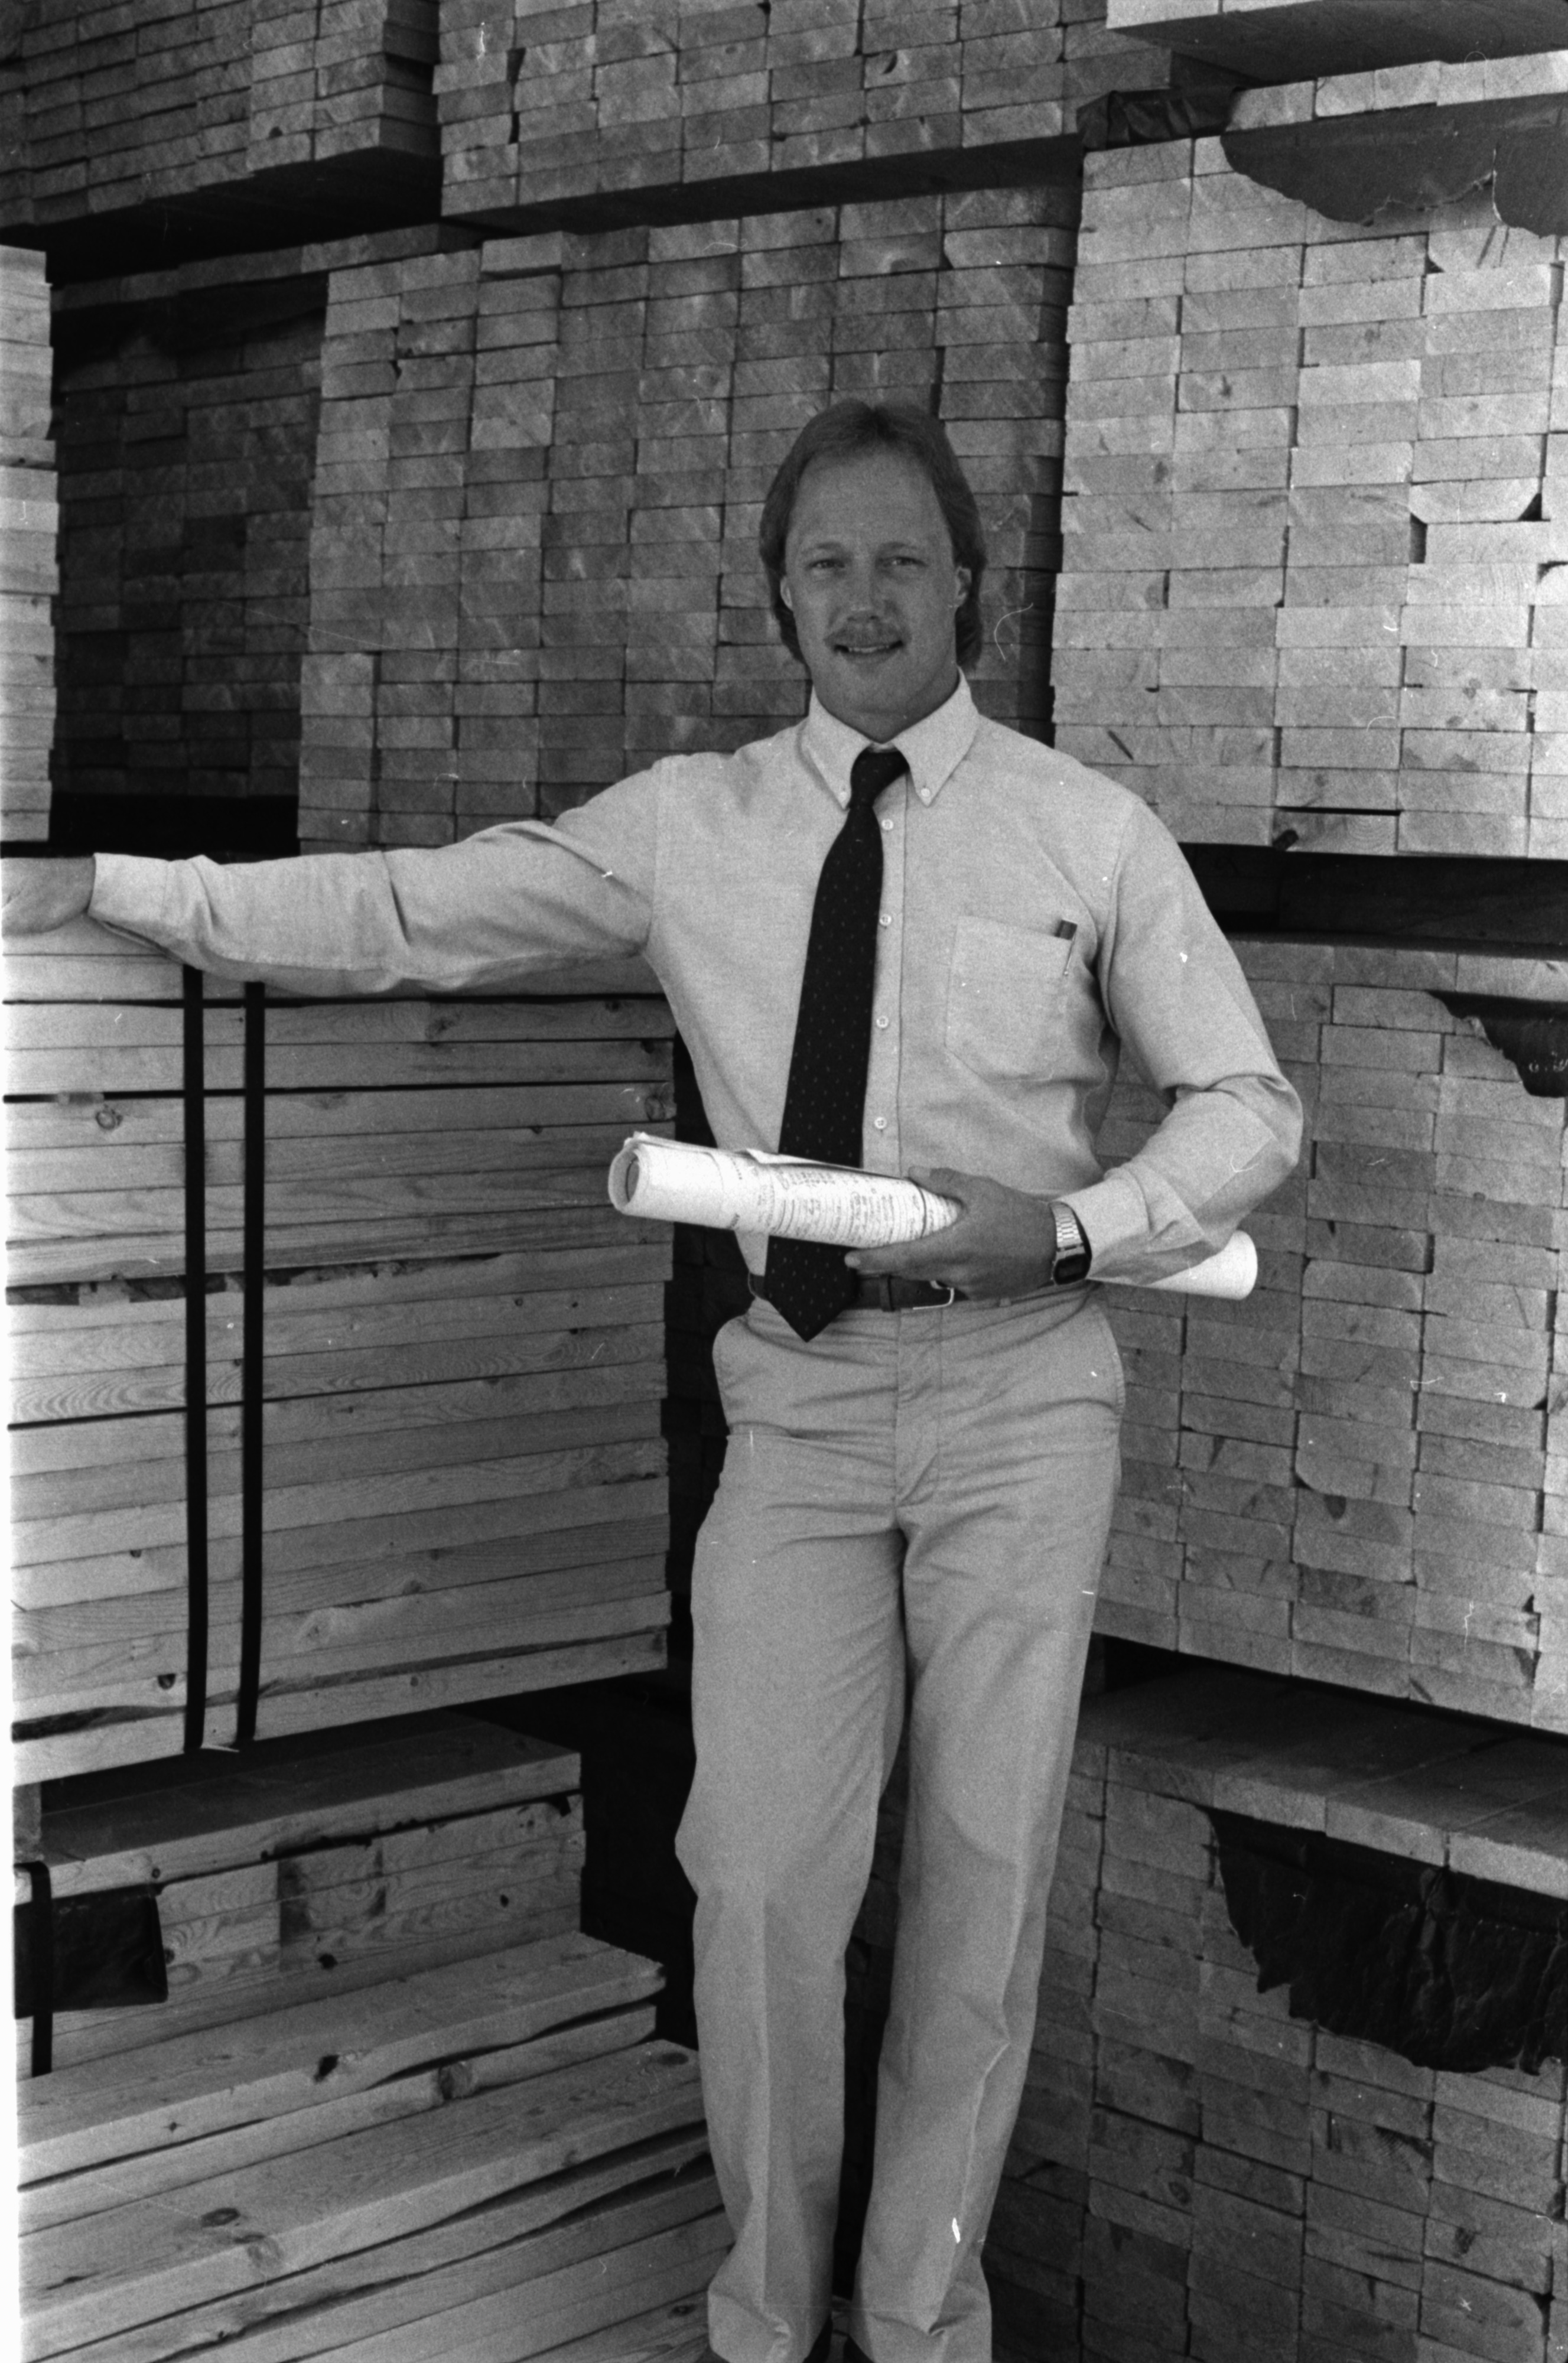 Fingerle Lumber Co, May 1985 image